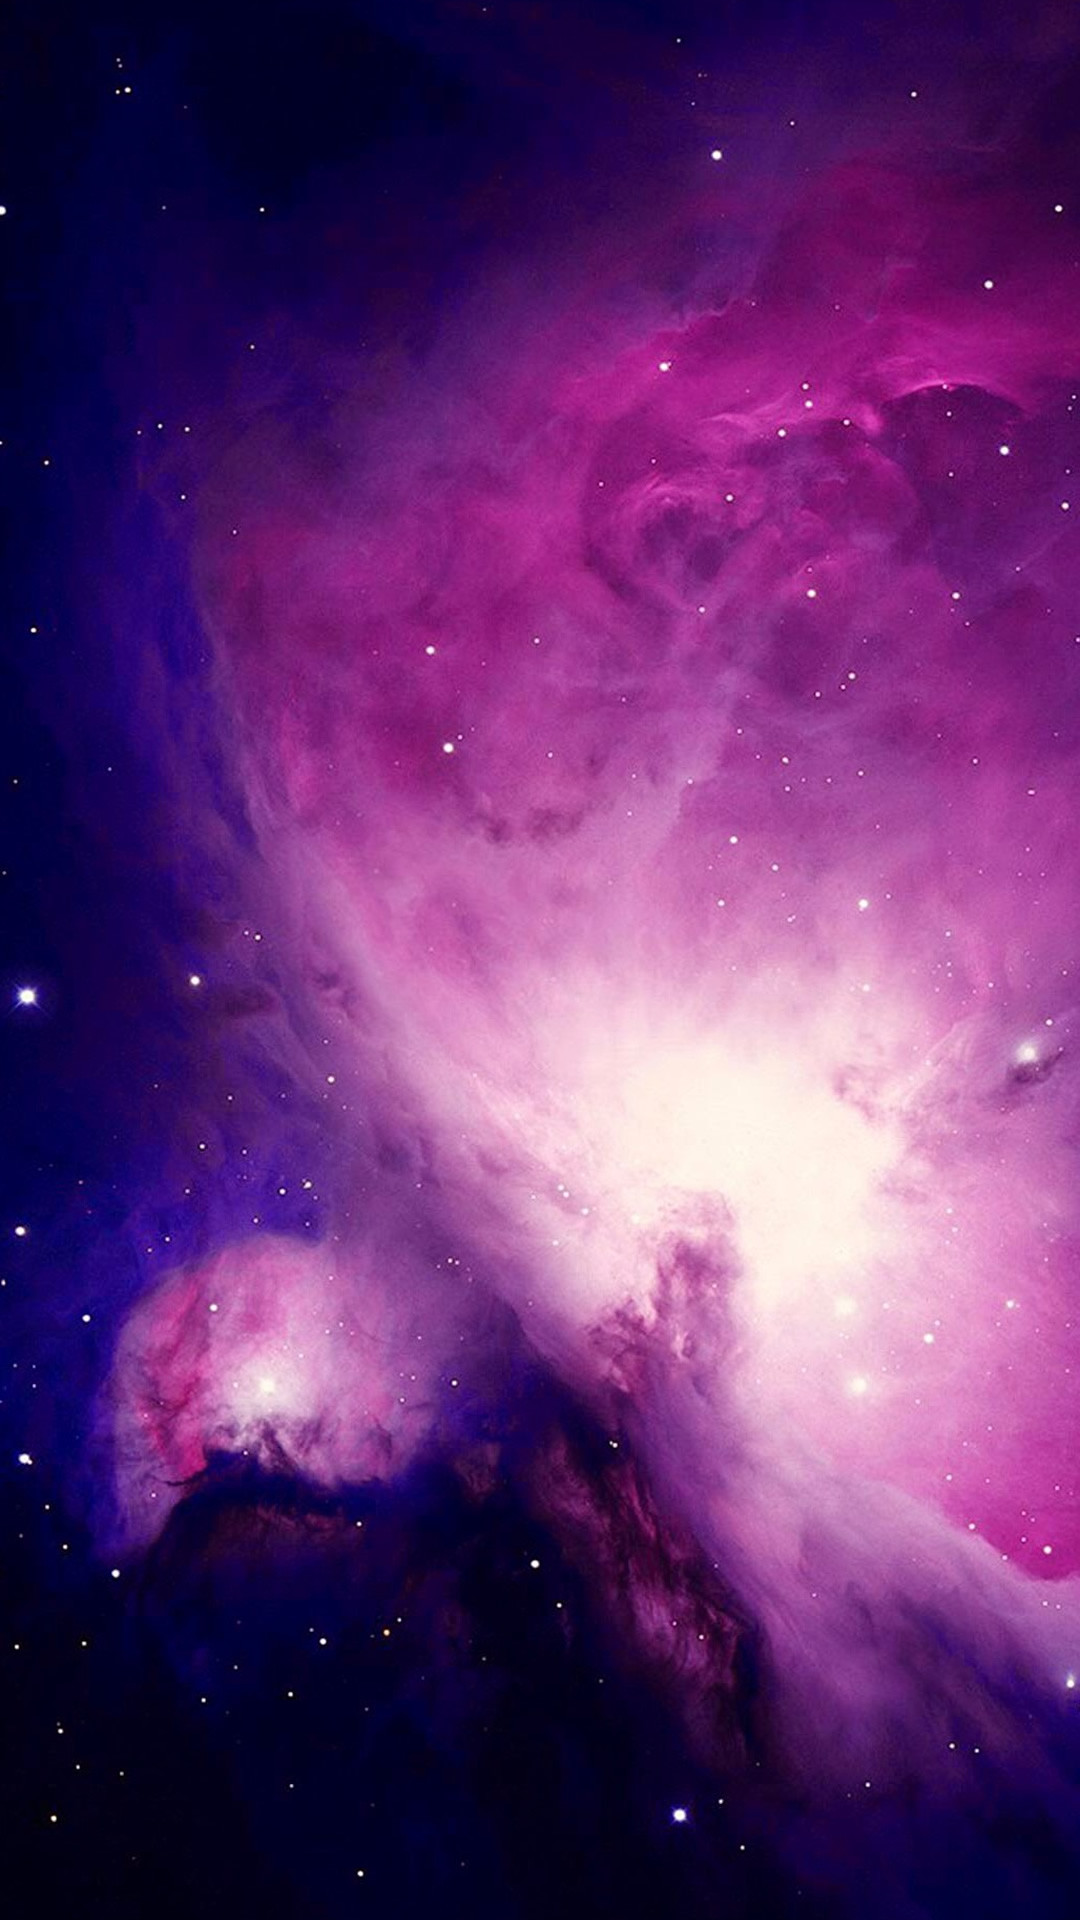 Zedge Full Hd Wallpaper Pink Stars Wallpapers For Mobile 183 ① Wallpapertag